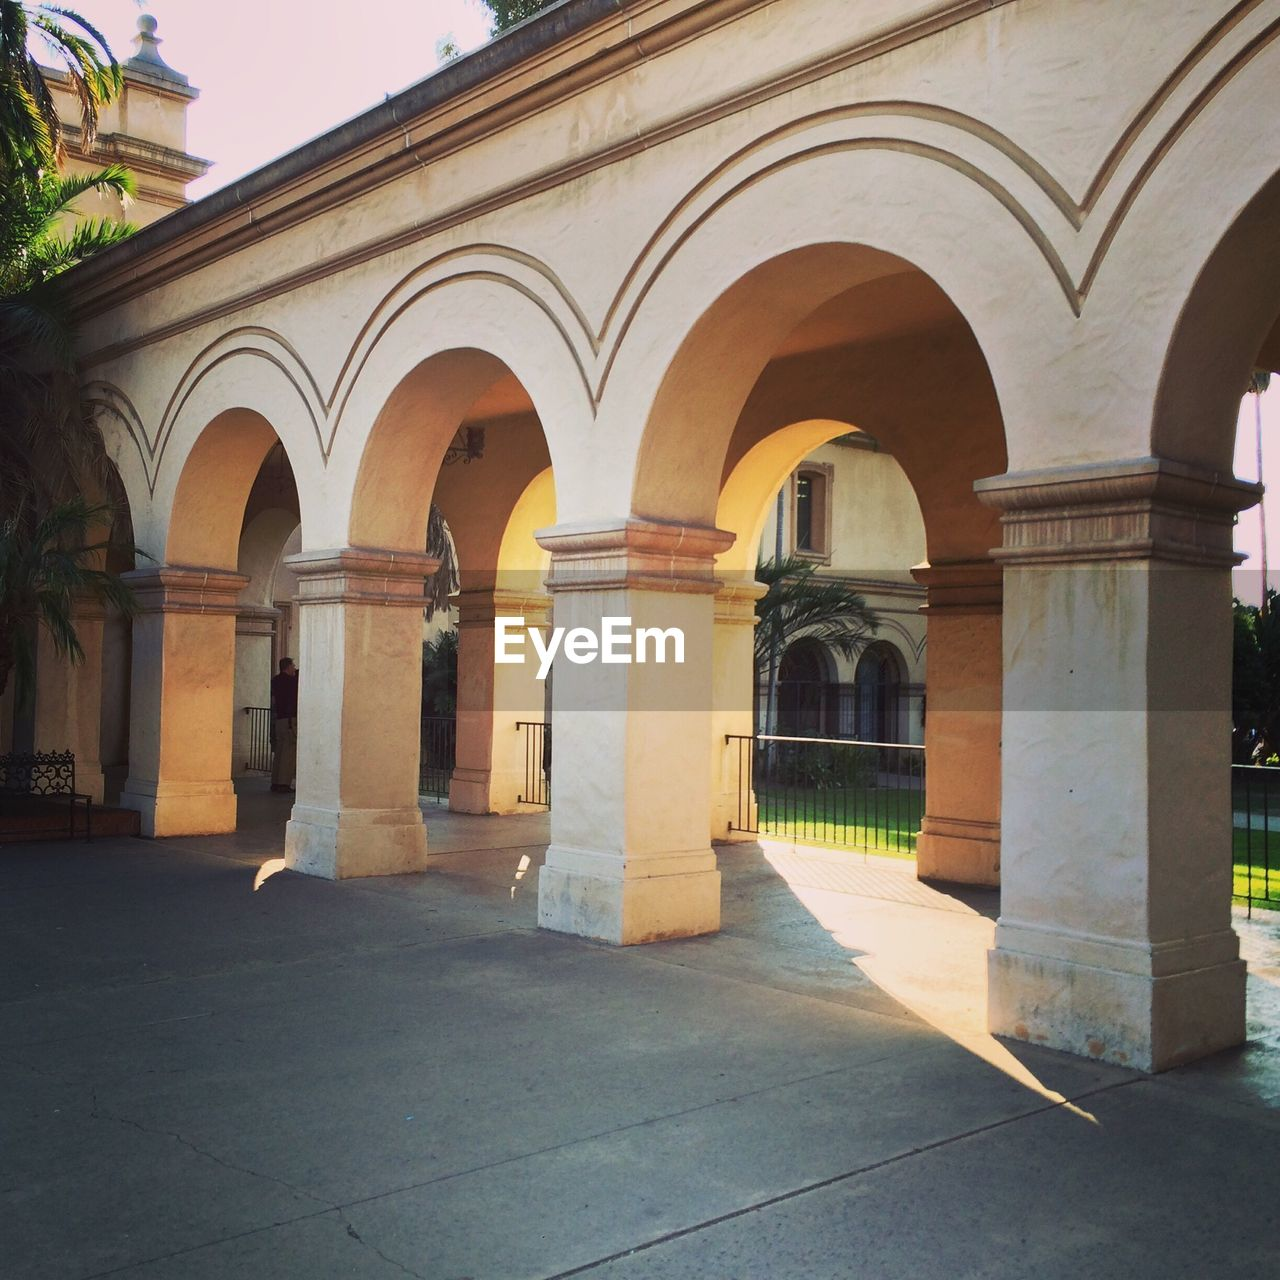 Row of arches and columns outside building